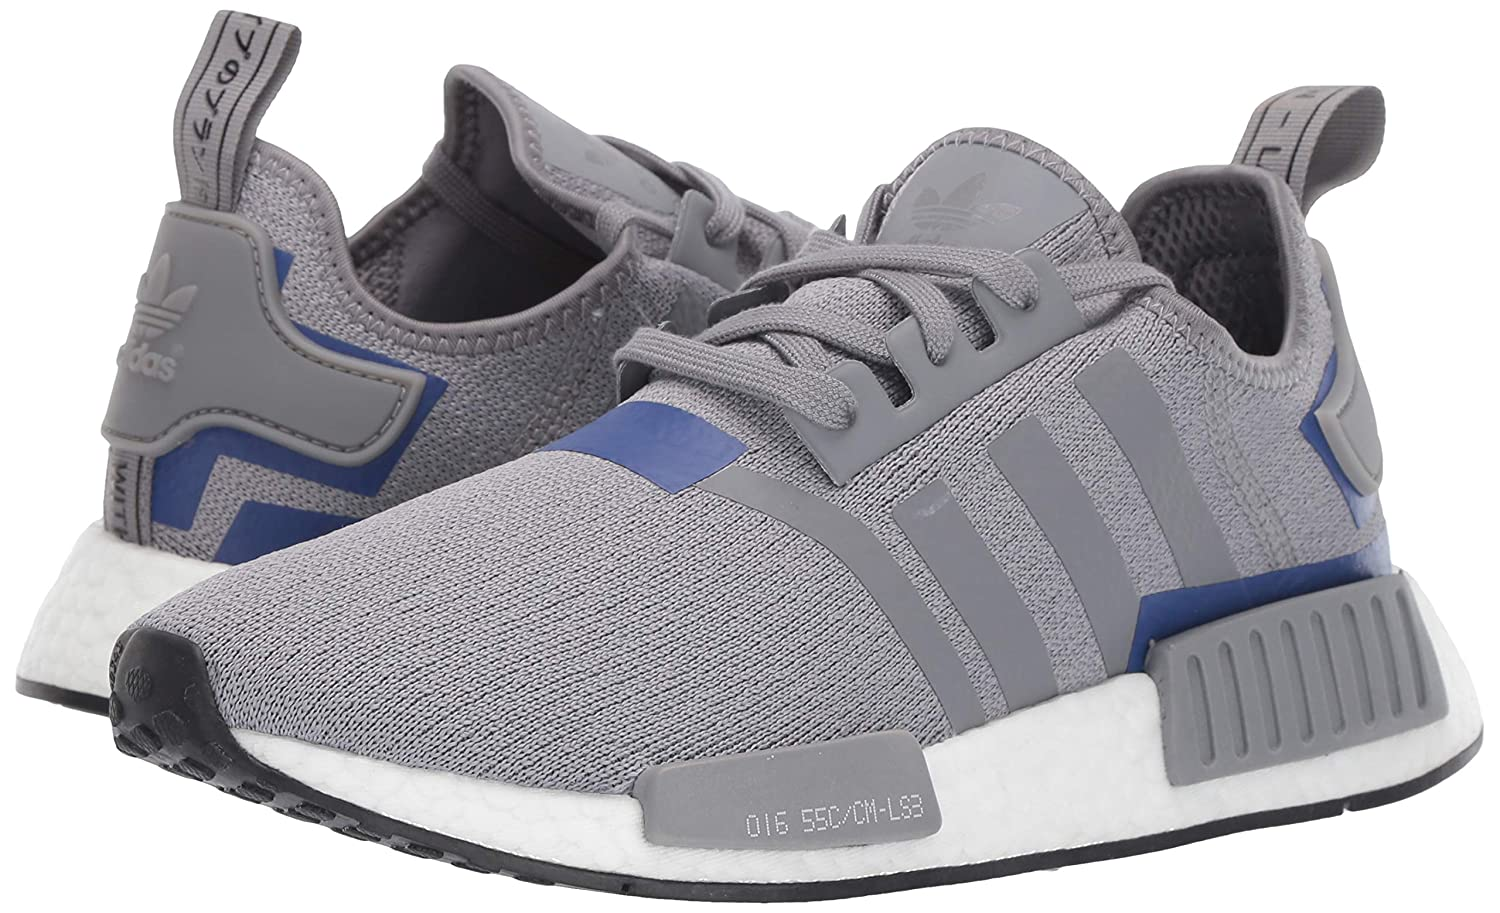 adidas Originals Men's NMD_R1 Running Shoe GreyActive Blue, 10 M US